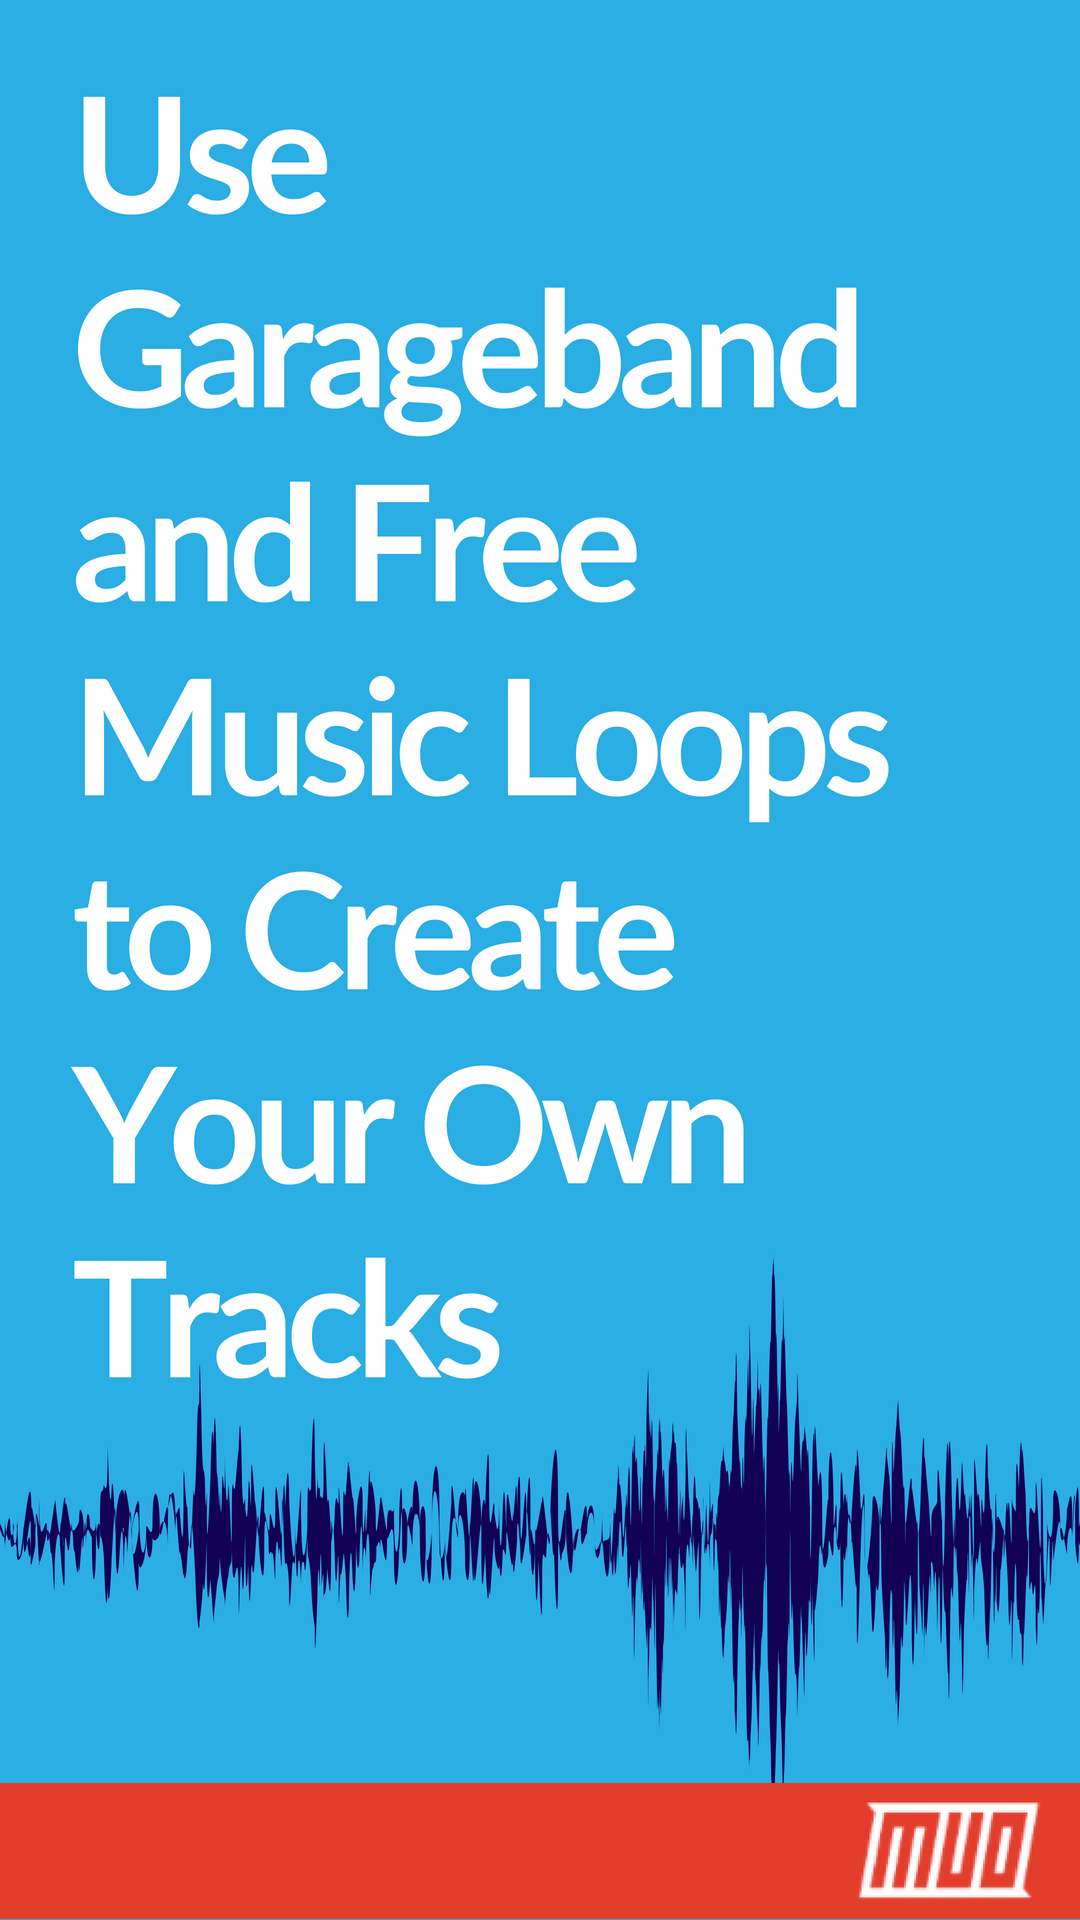 How To Use Garageband And Free Music Loops To Create Your Own Tracks Garage Band Free Music Music Software